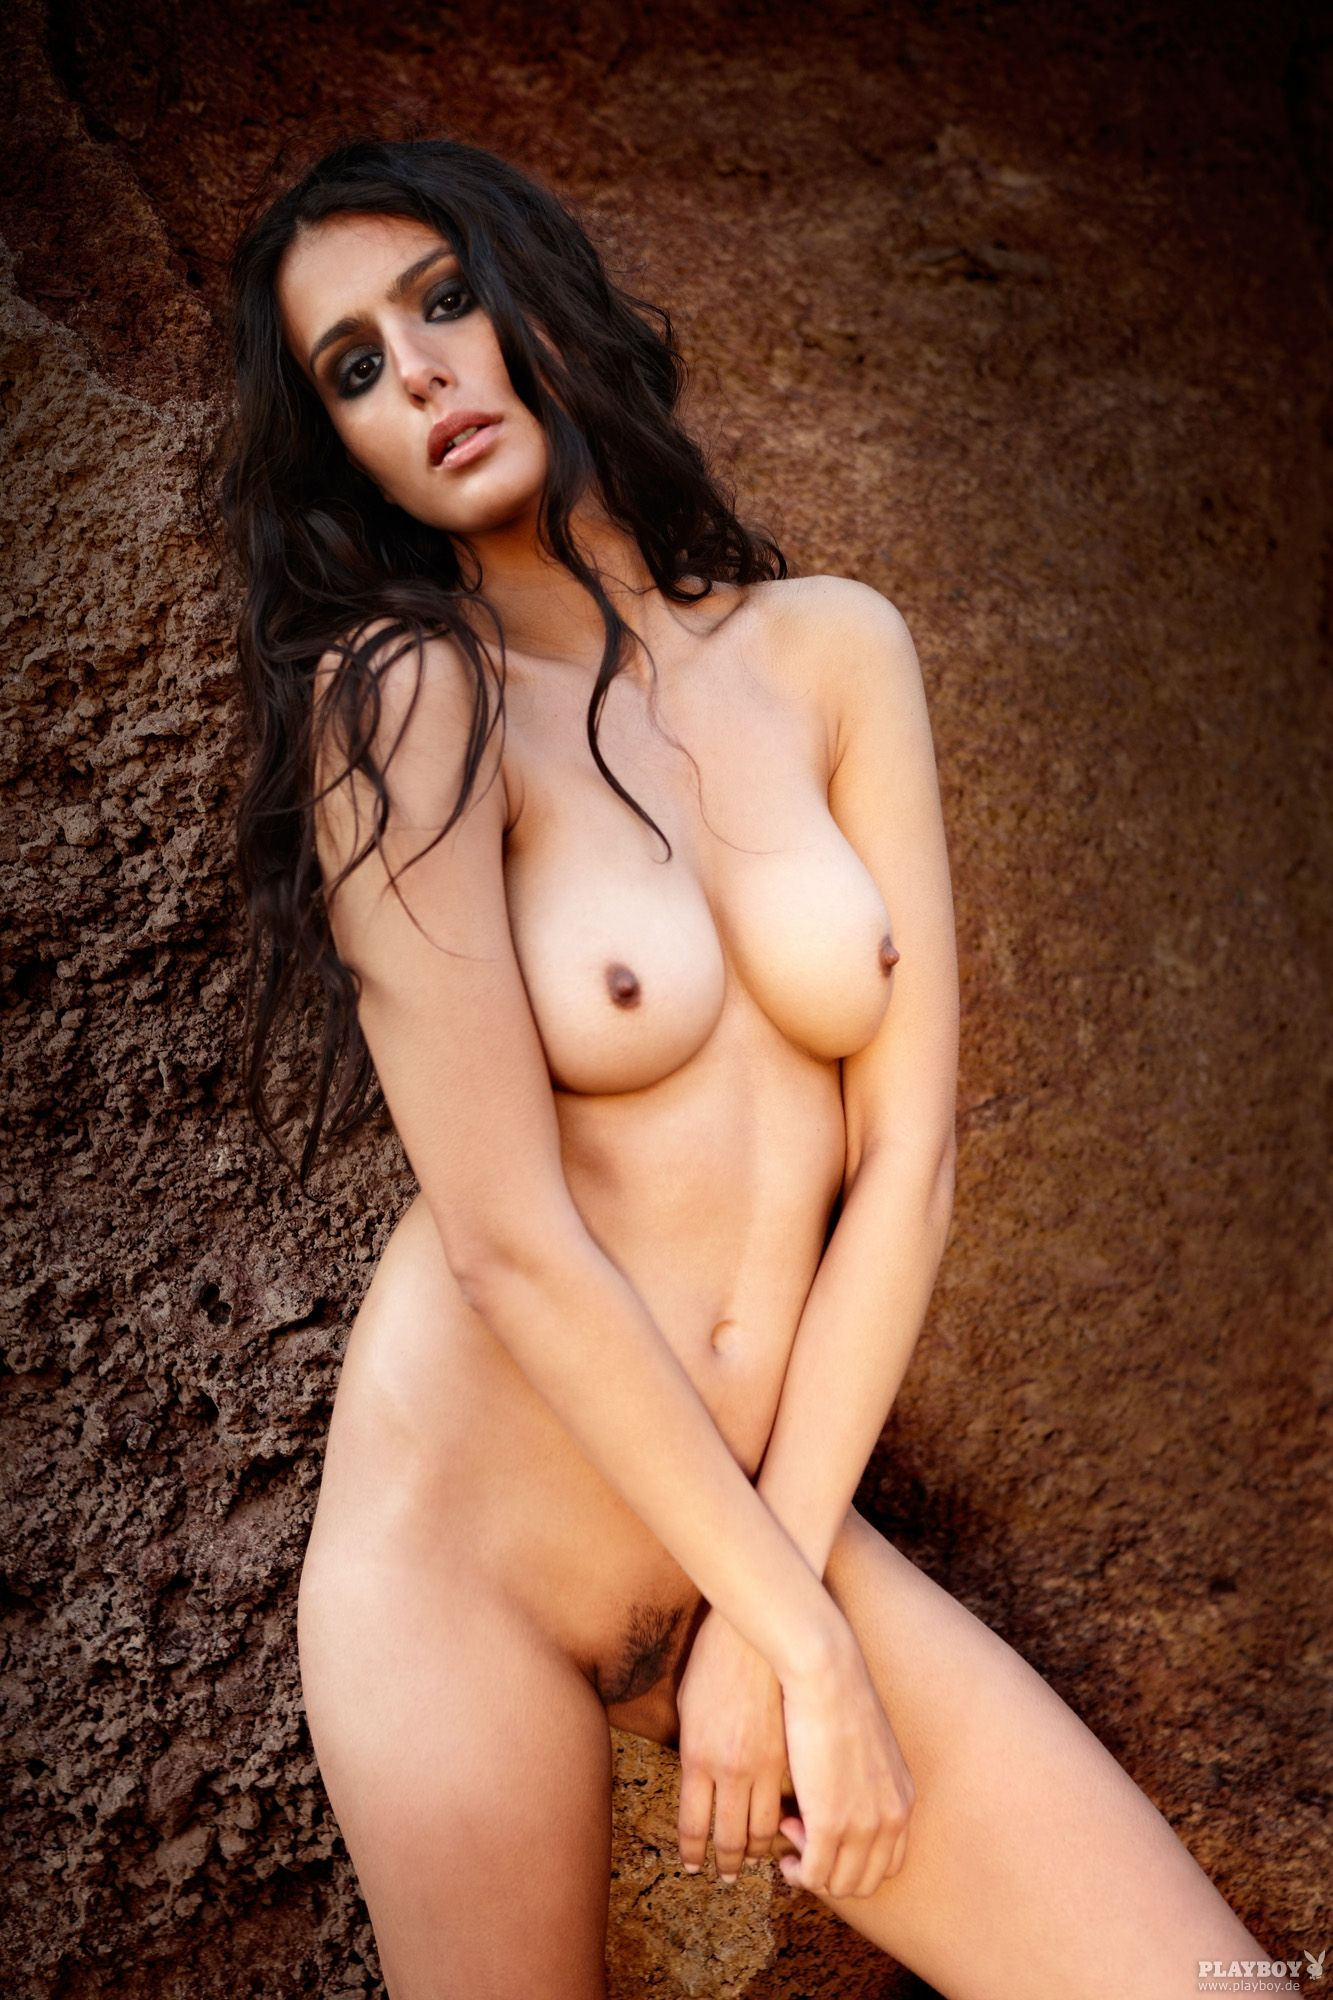 31824_GabrielaMilagre_PlayboyGermany_August201237_123_239lo.jpg